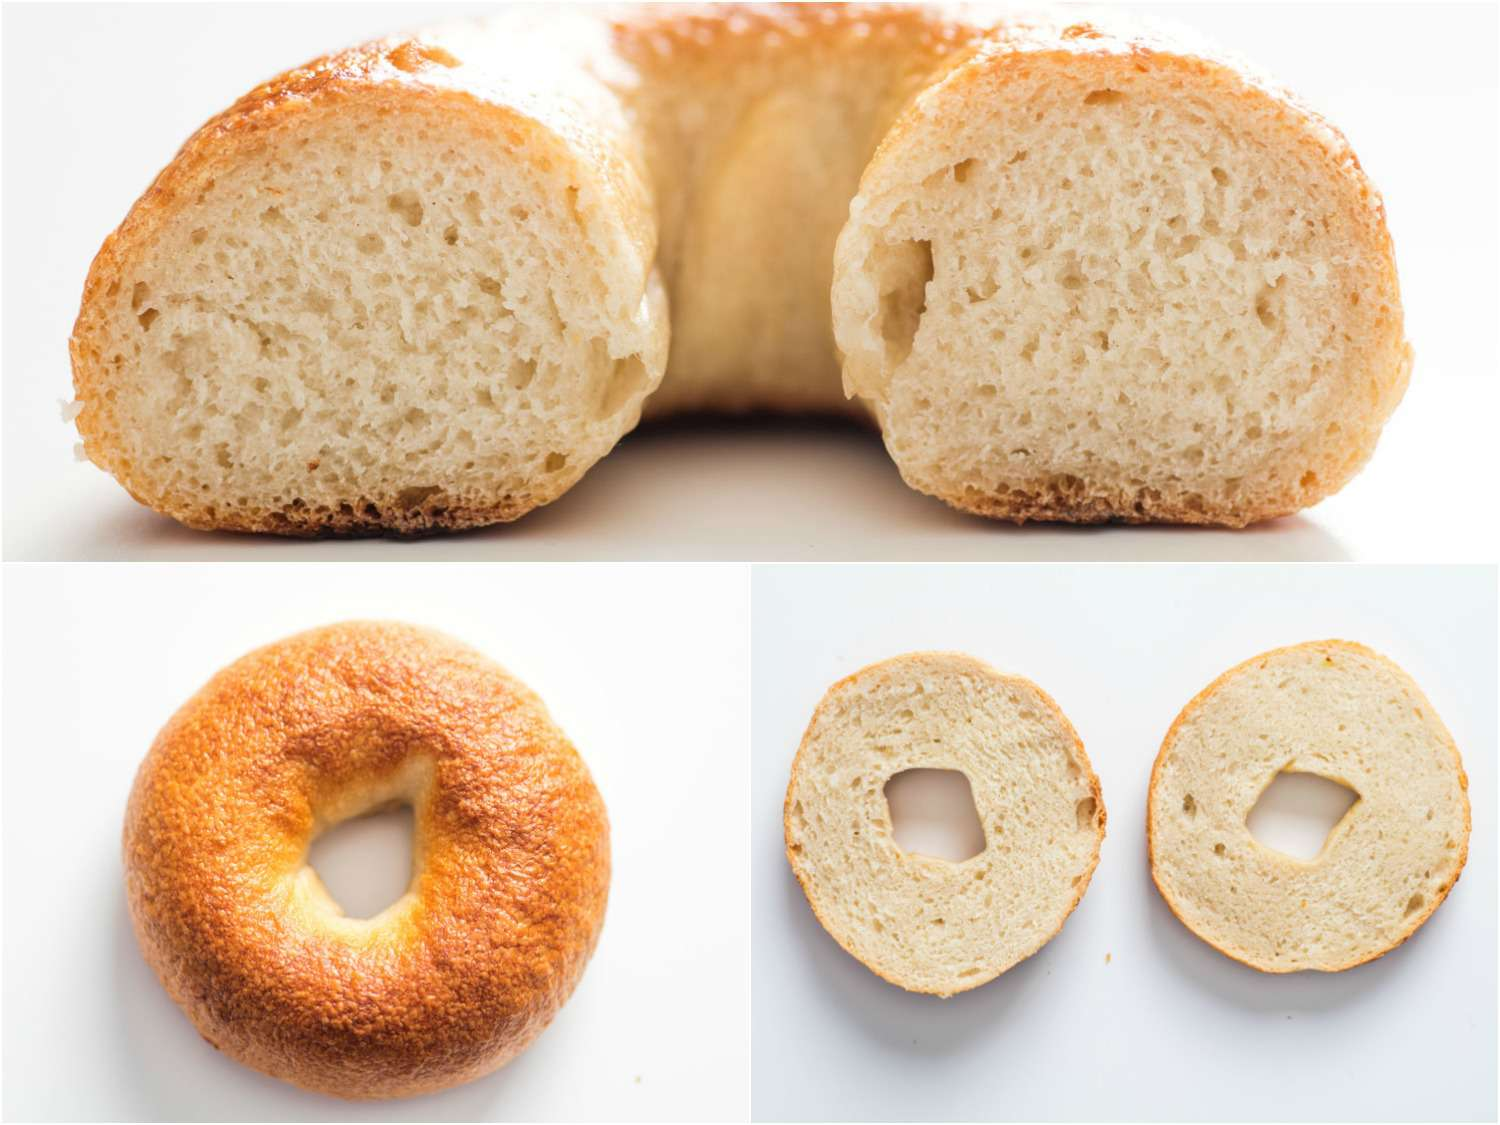 Photo collage showing cross-section of bagels cut horizontally and vertically.